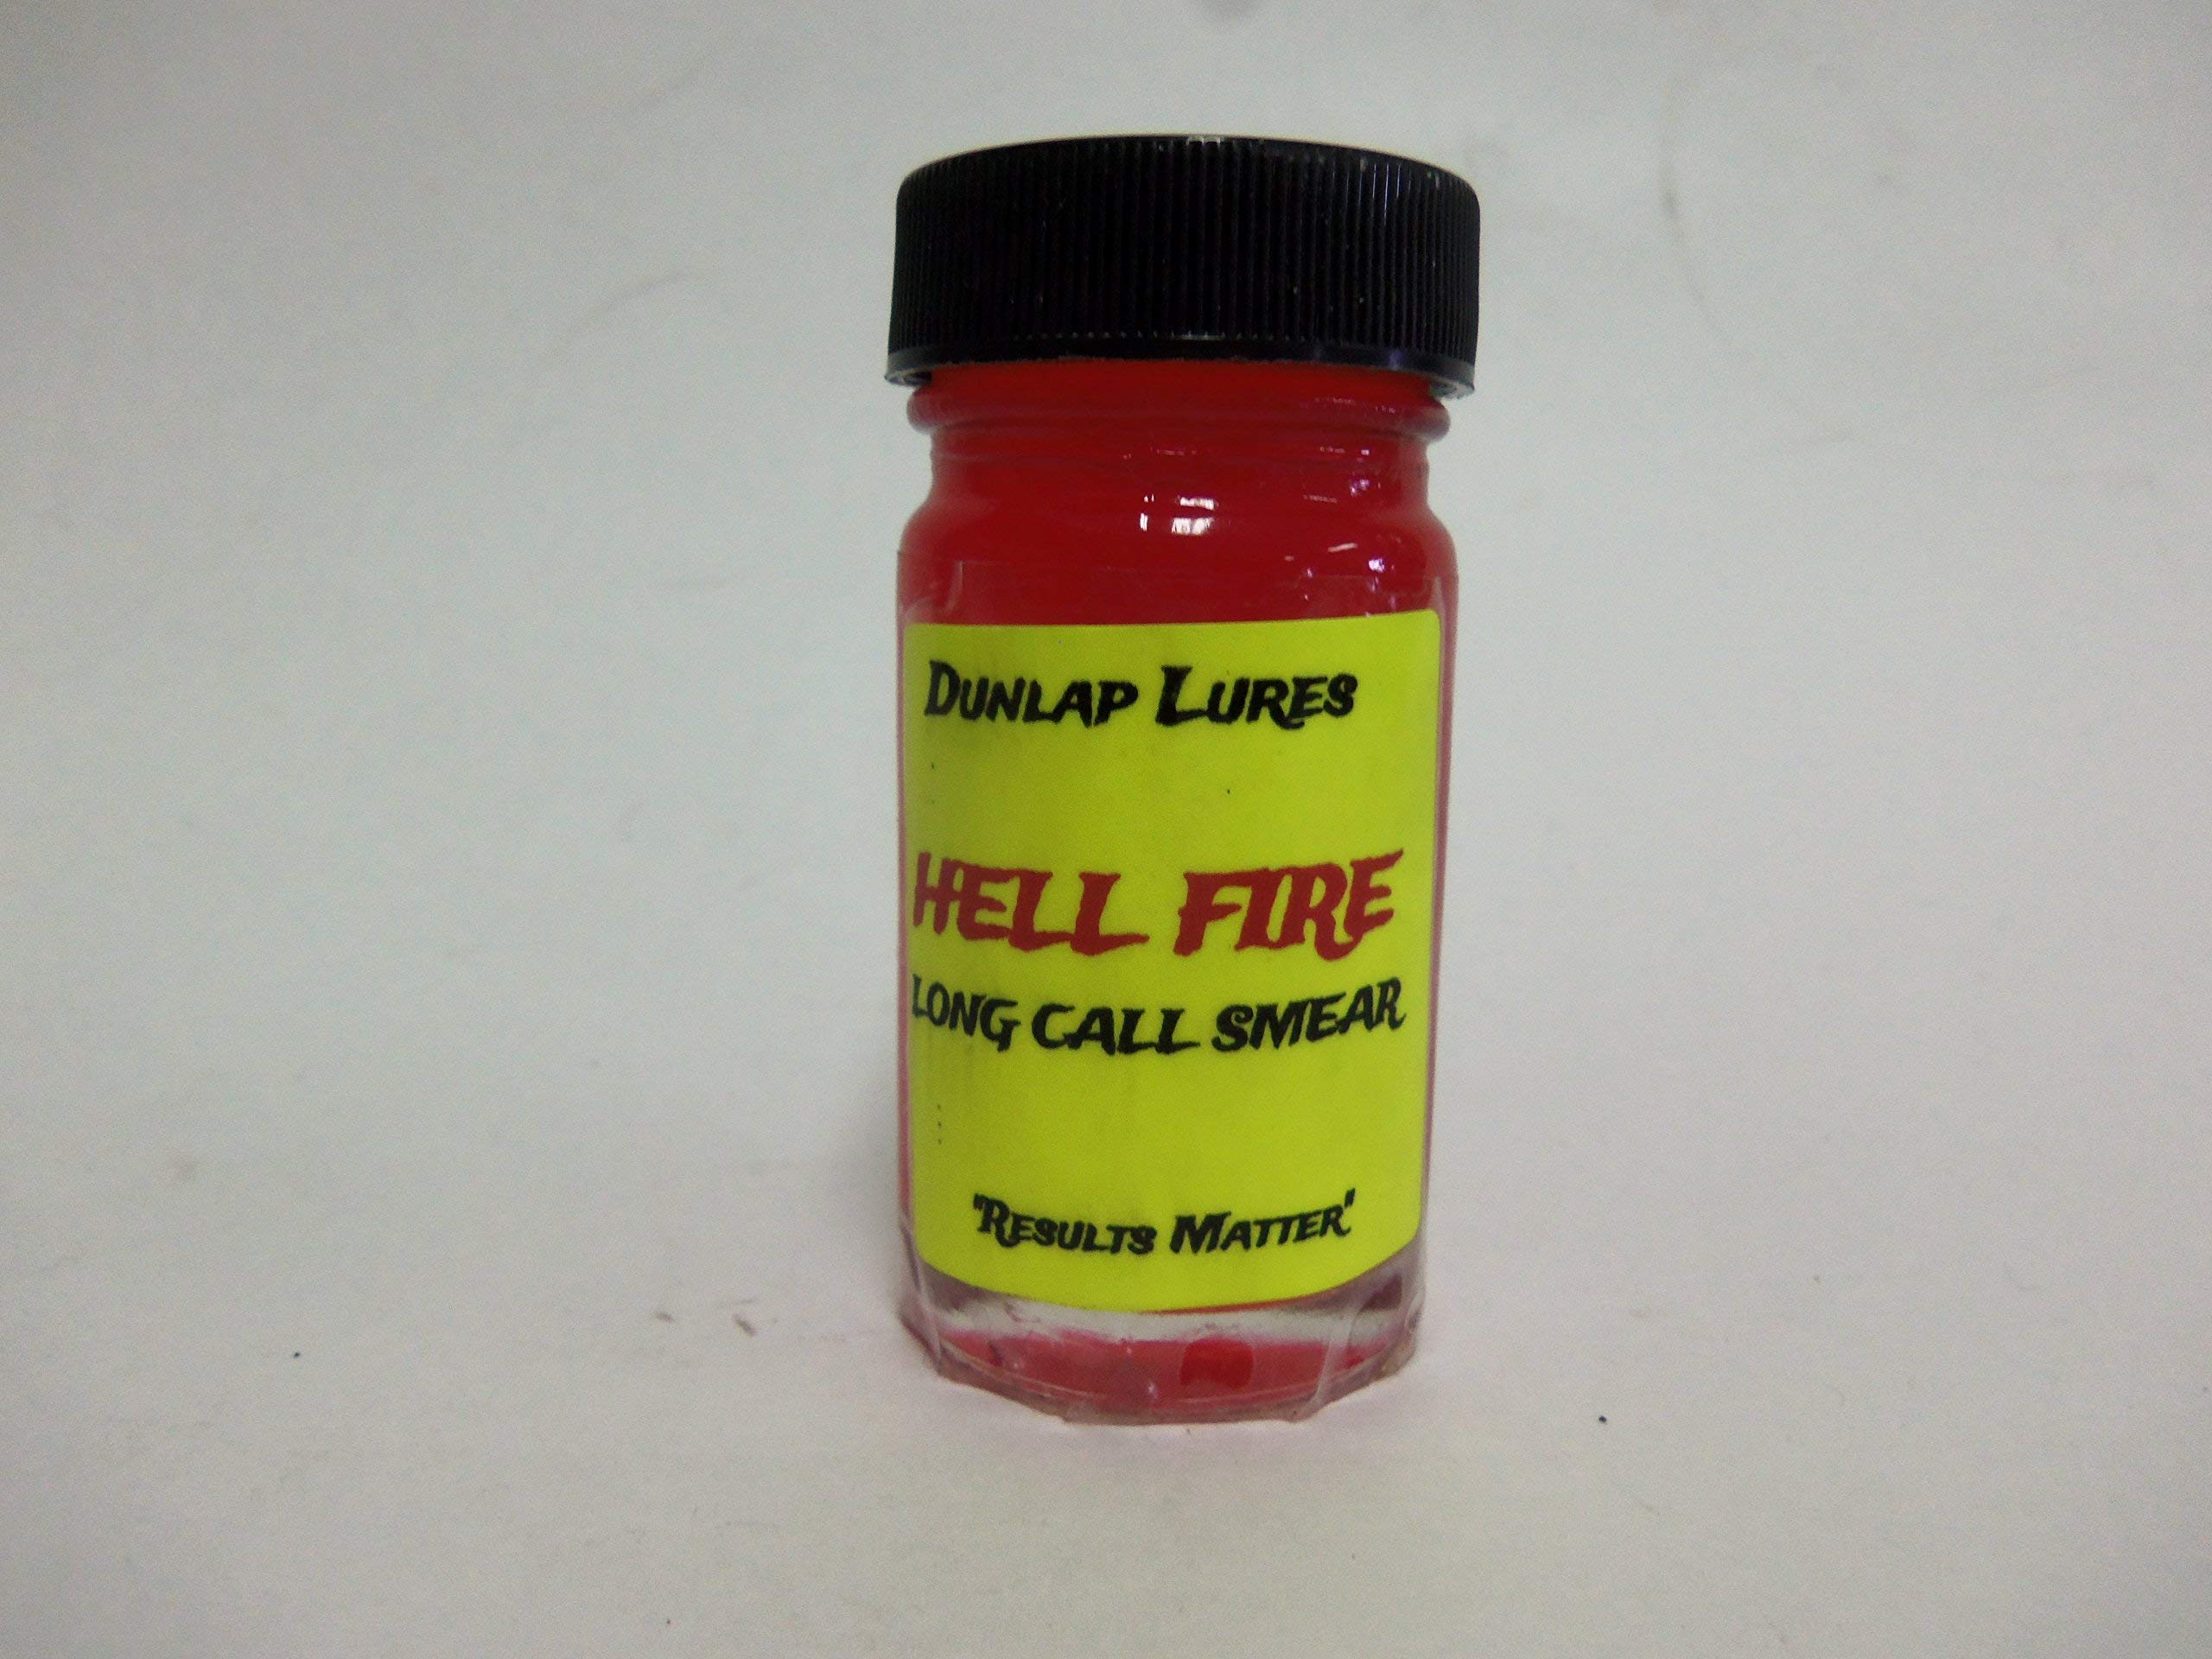 Dunlap's Hellfire Long Call Smear Lure (1 oz.) by Dunlap Lures (Image #1)